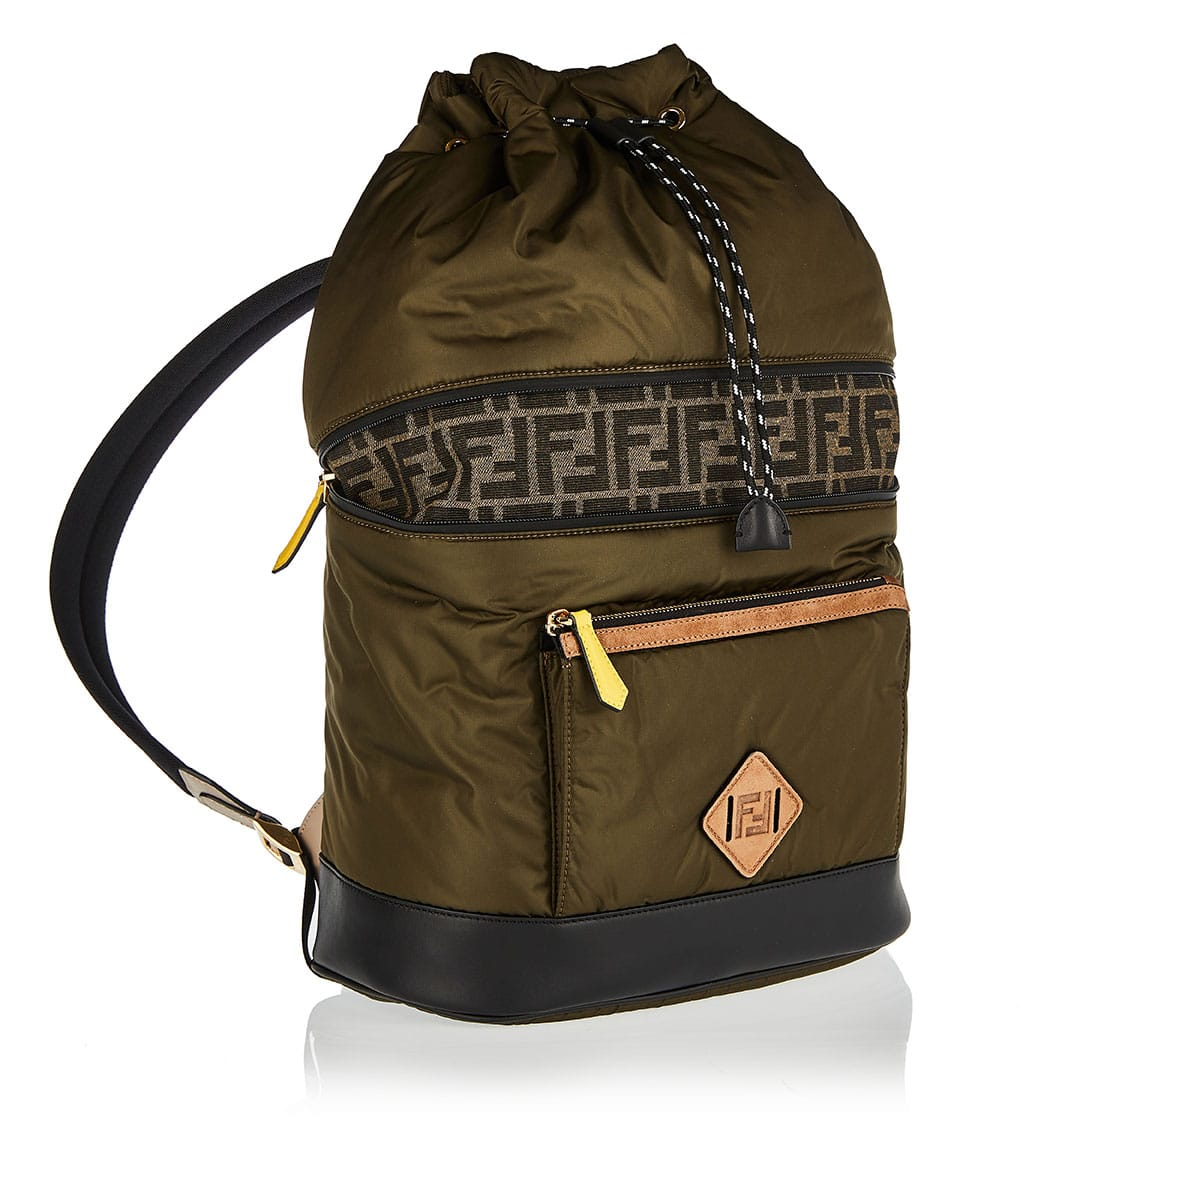 FF nylon backpack